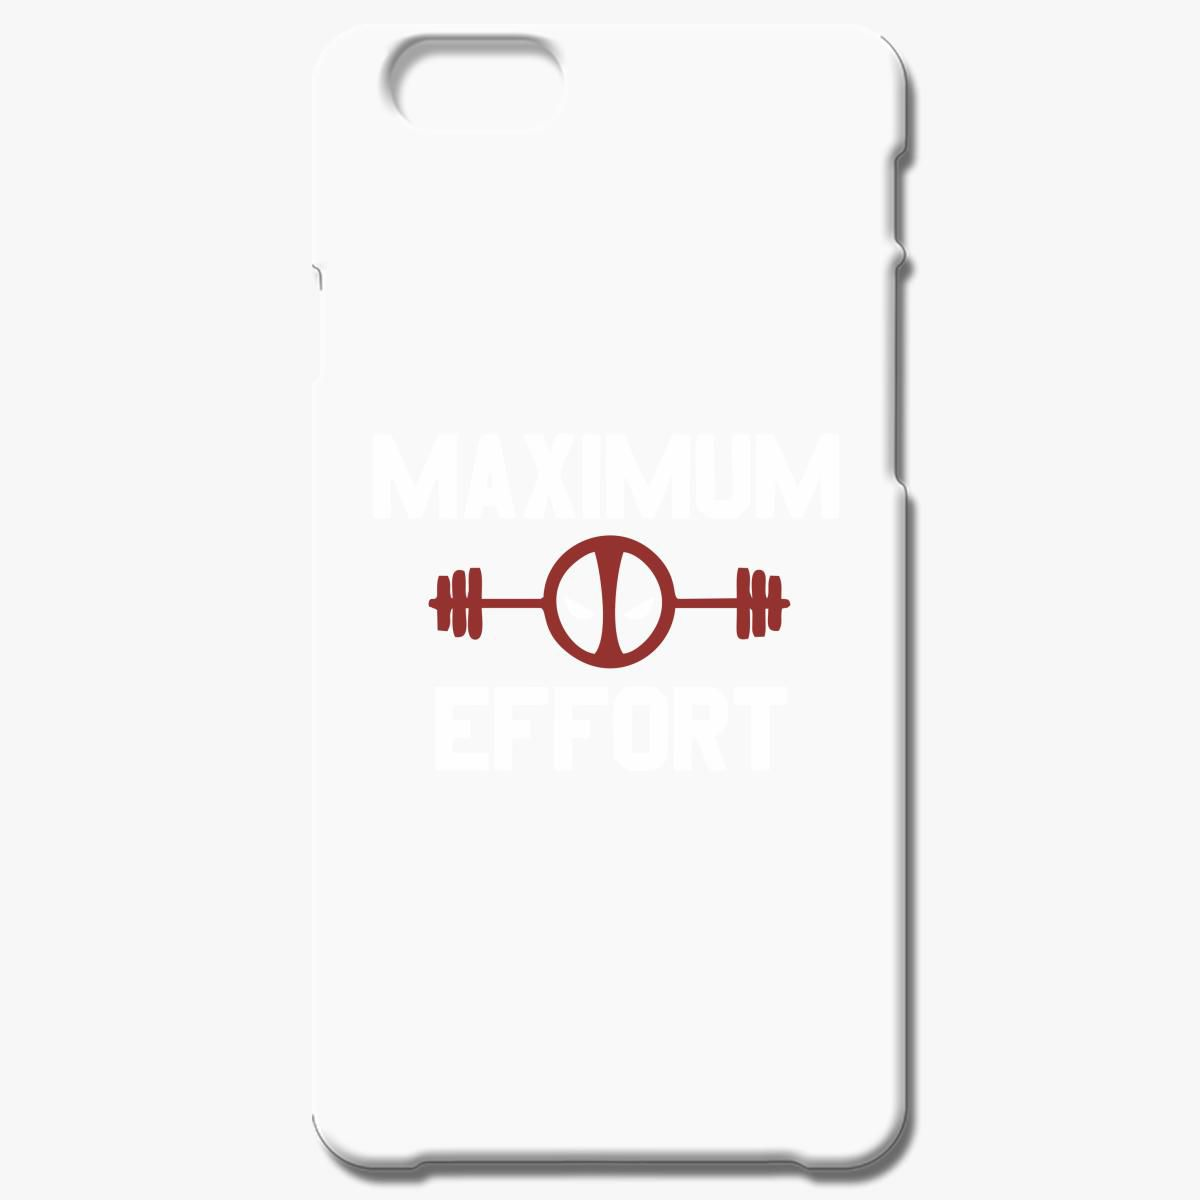 Maximum Affort Iphone 6 6s Case